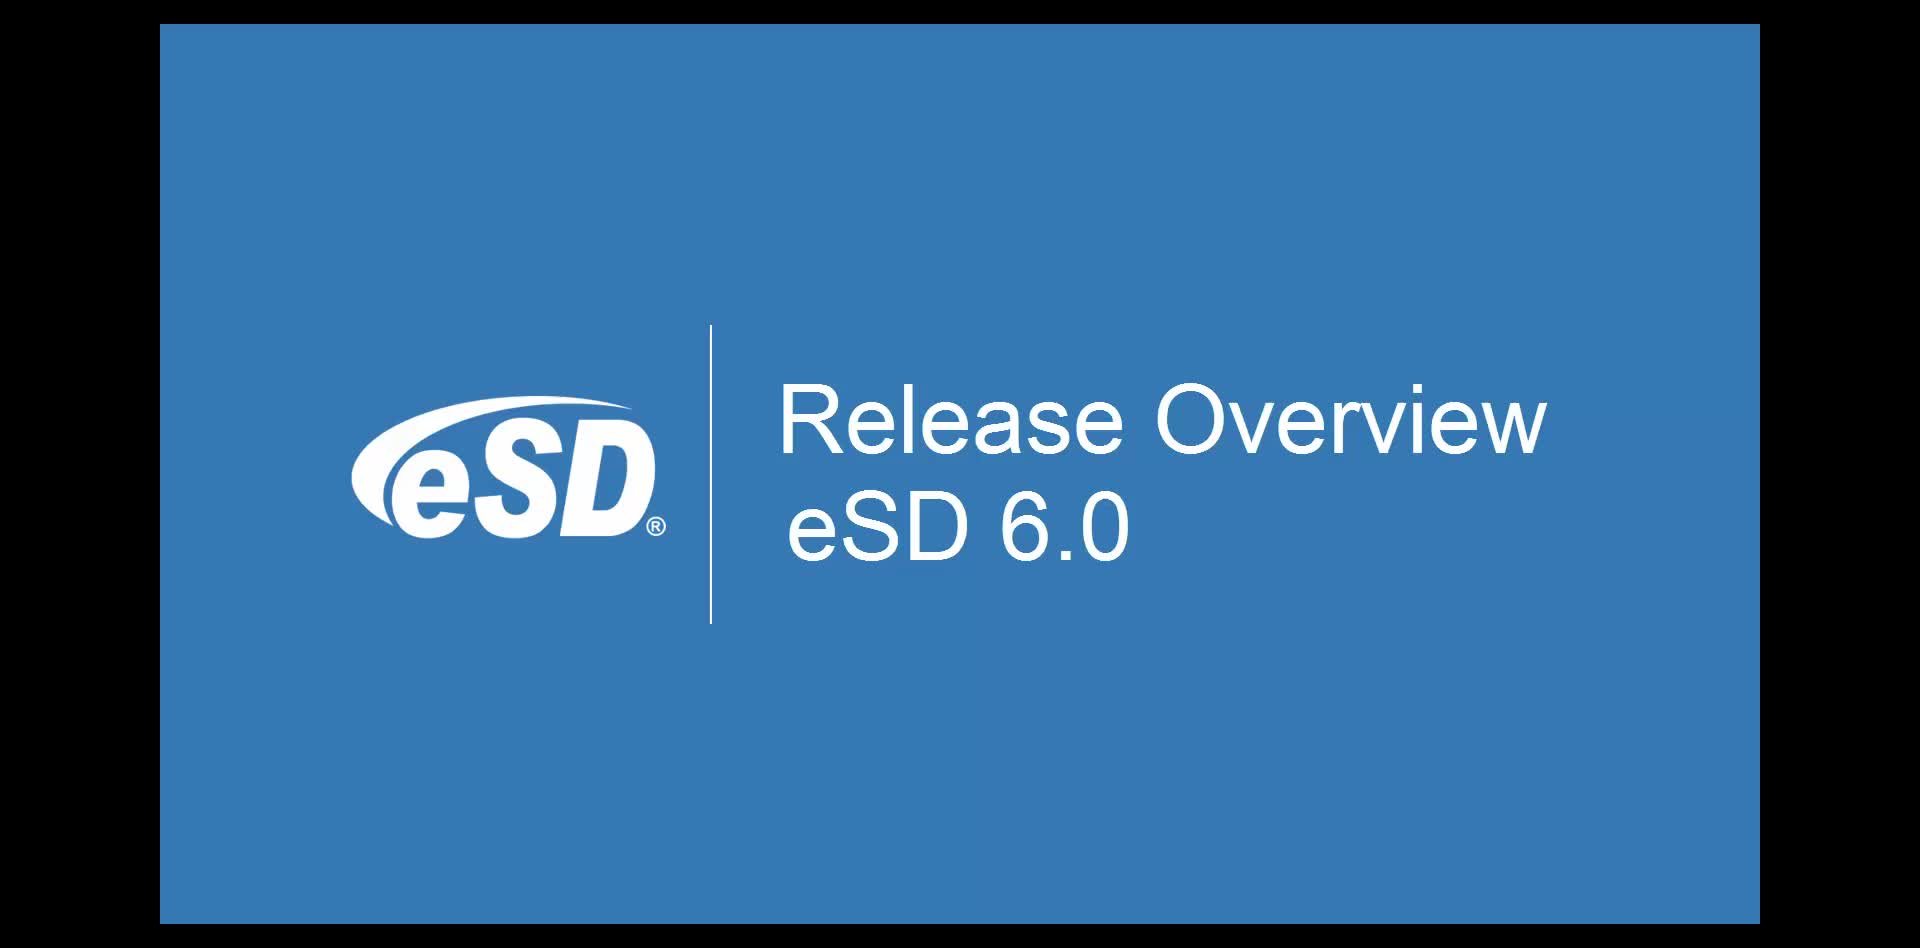 eSD 6.0 Release Overview